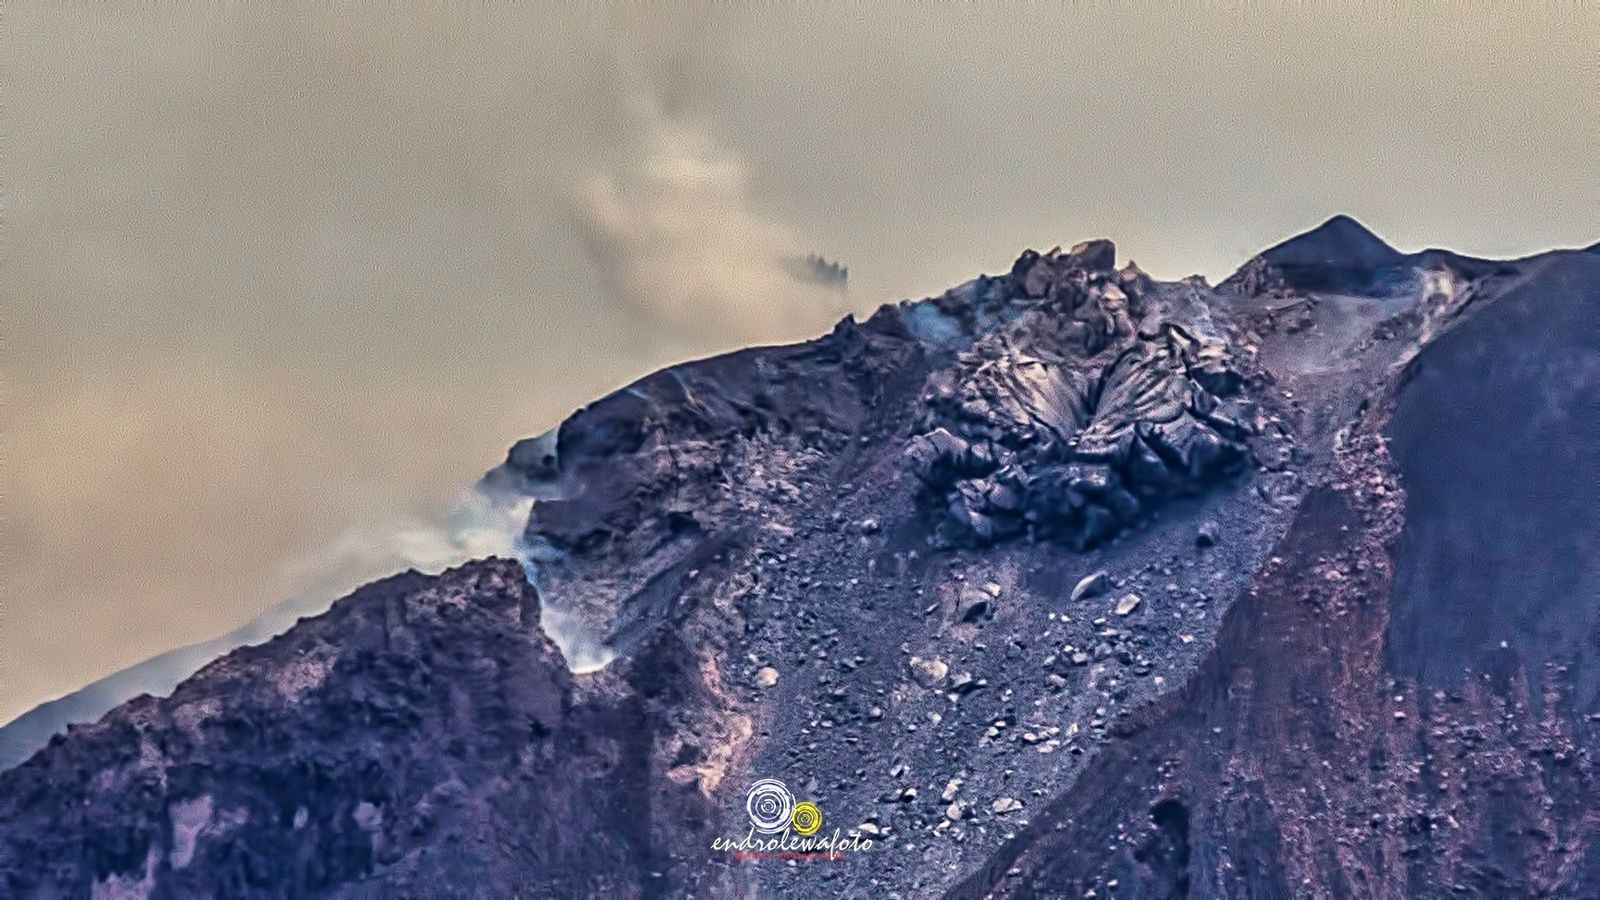 The dome of the Sinabung, where the viscous lava comes out like the toothpaste of its tube - photo 21.04.2017 Endro Lewa